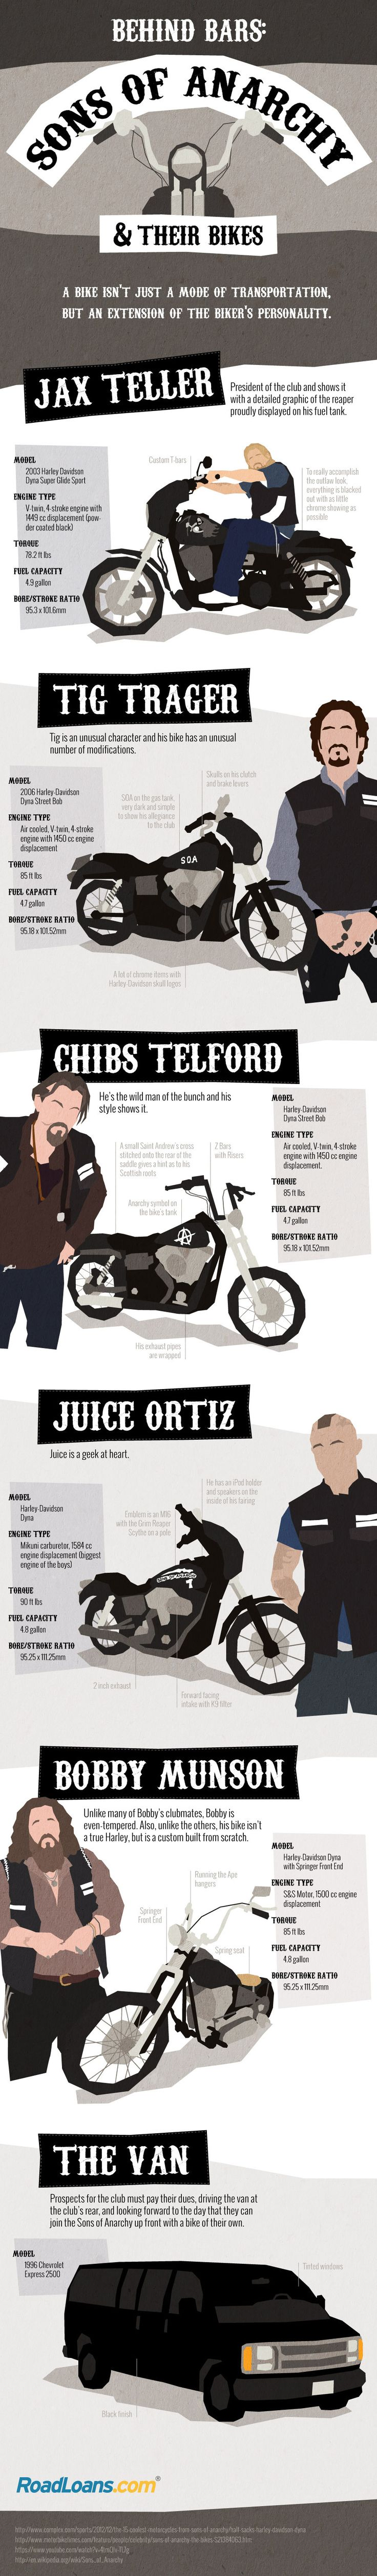 Sons Of Anarchy and Their Bikes (Infographic)